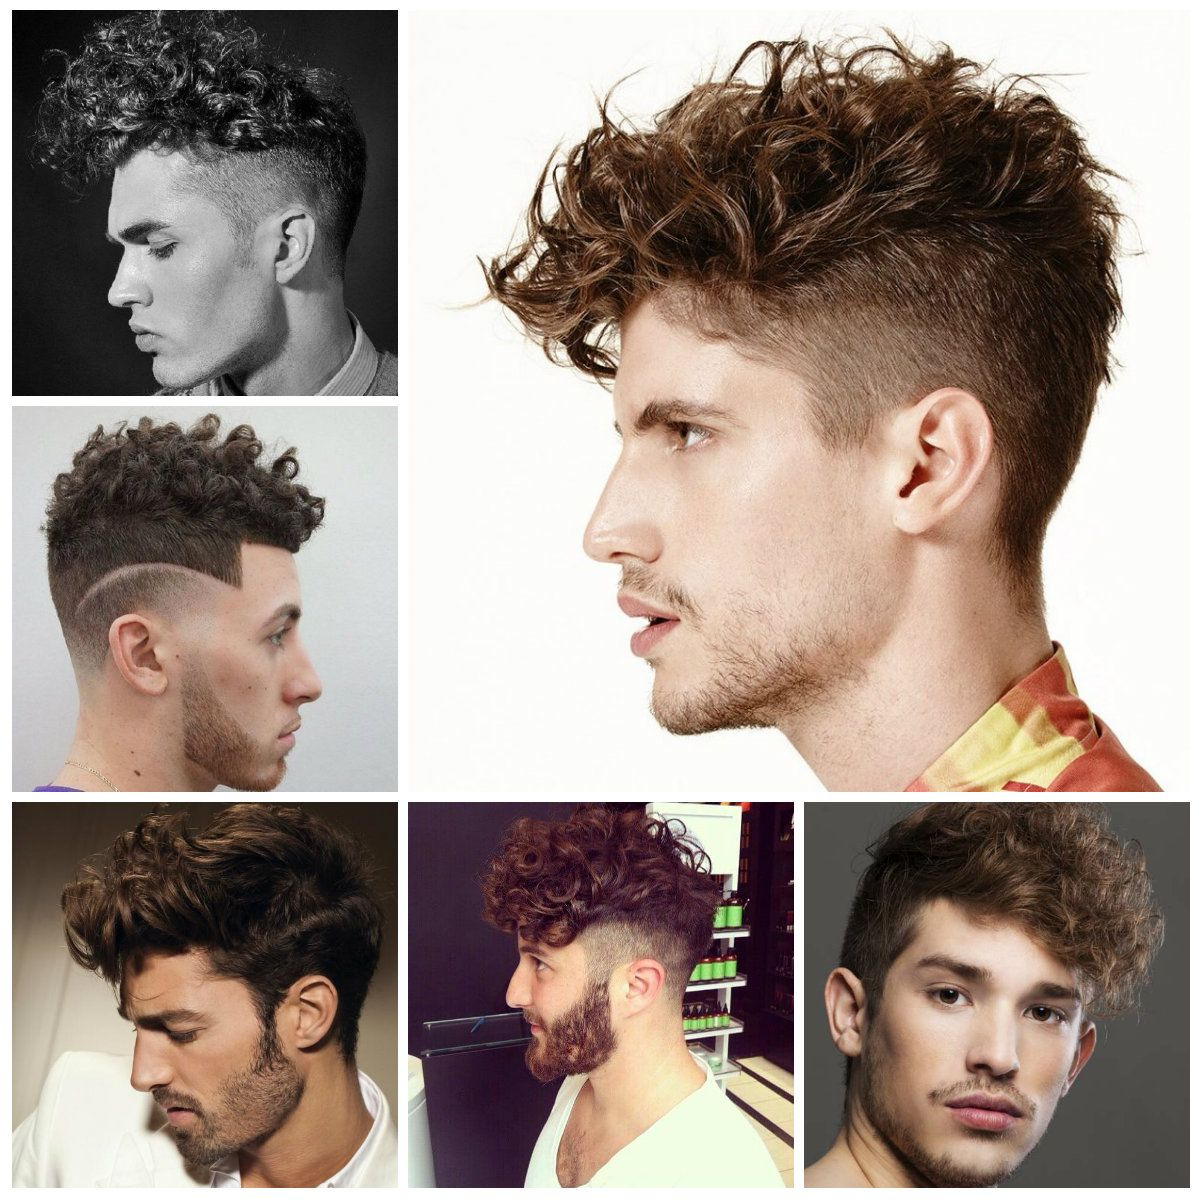 Cool Curly Undercut Hairstyles For Men 2017 | N Hair In 2018 For Undercut Hairstyles For Curly Hair (View 6 of 20)